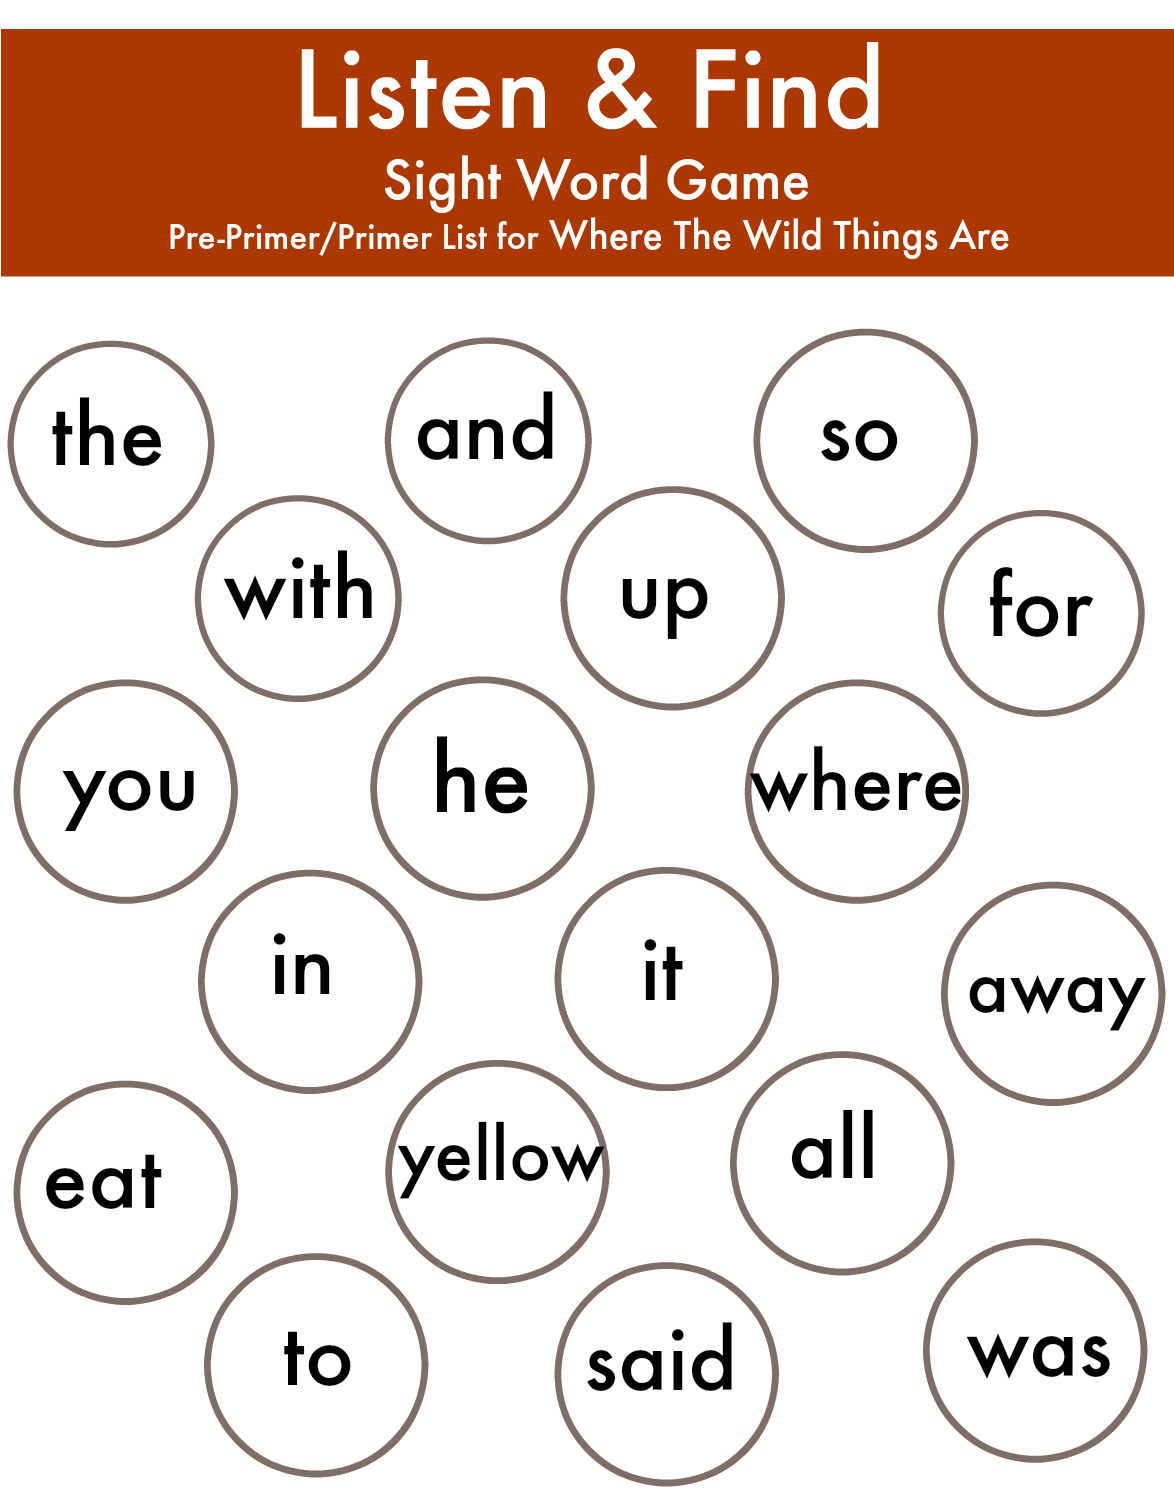 Where The Wild Things Are Preprimer And Primer Sight Words Game Board